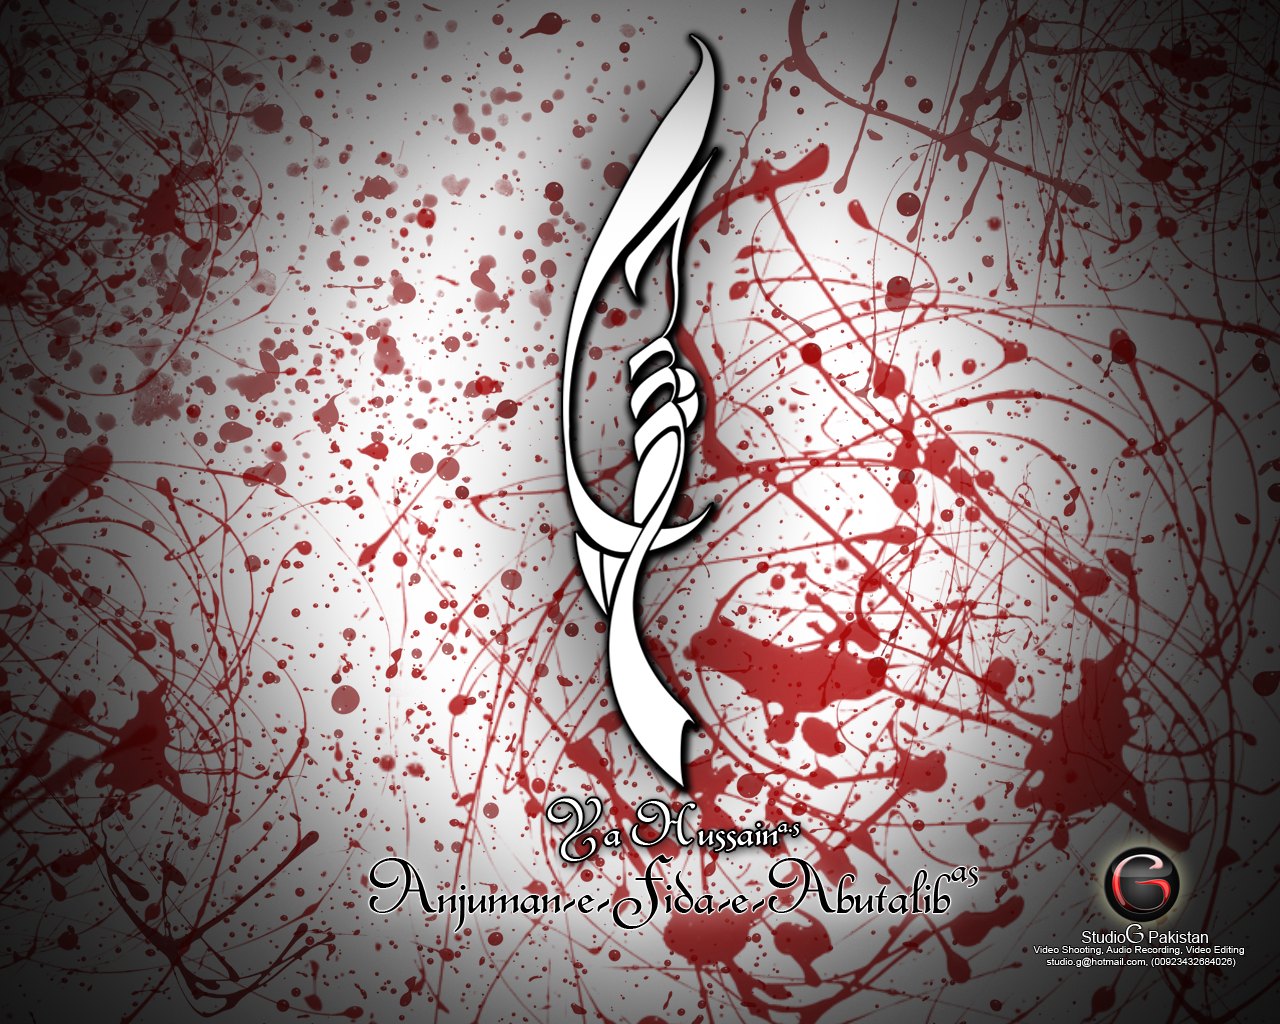 Home  Imam Hussain  Islamic Wallpapers  Islamic Wallpapers 2013  Ya Hussain  Ya Hussain Wallpaper 2013  AS 3 Imam Hussain ibn Ali